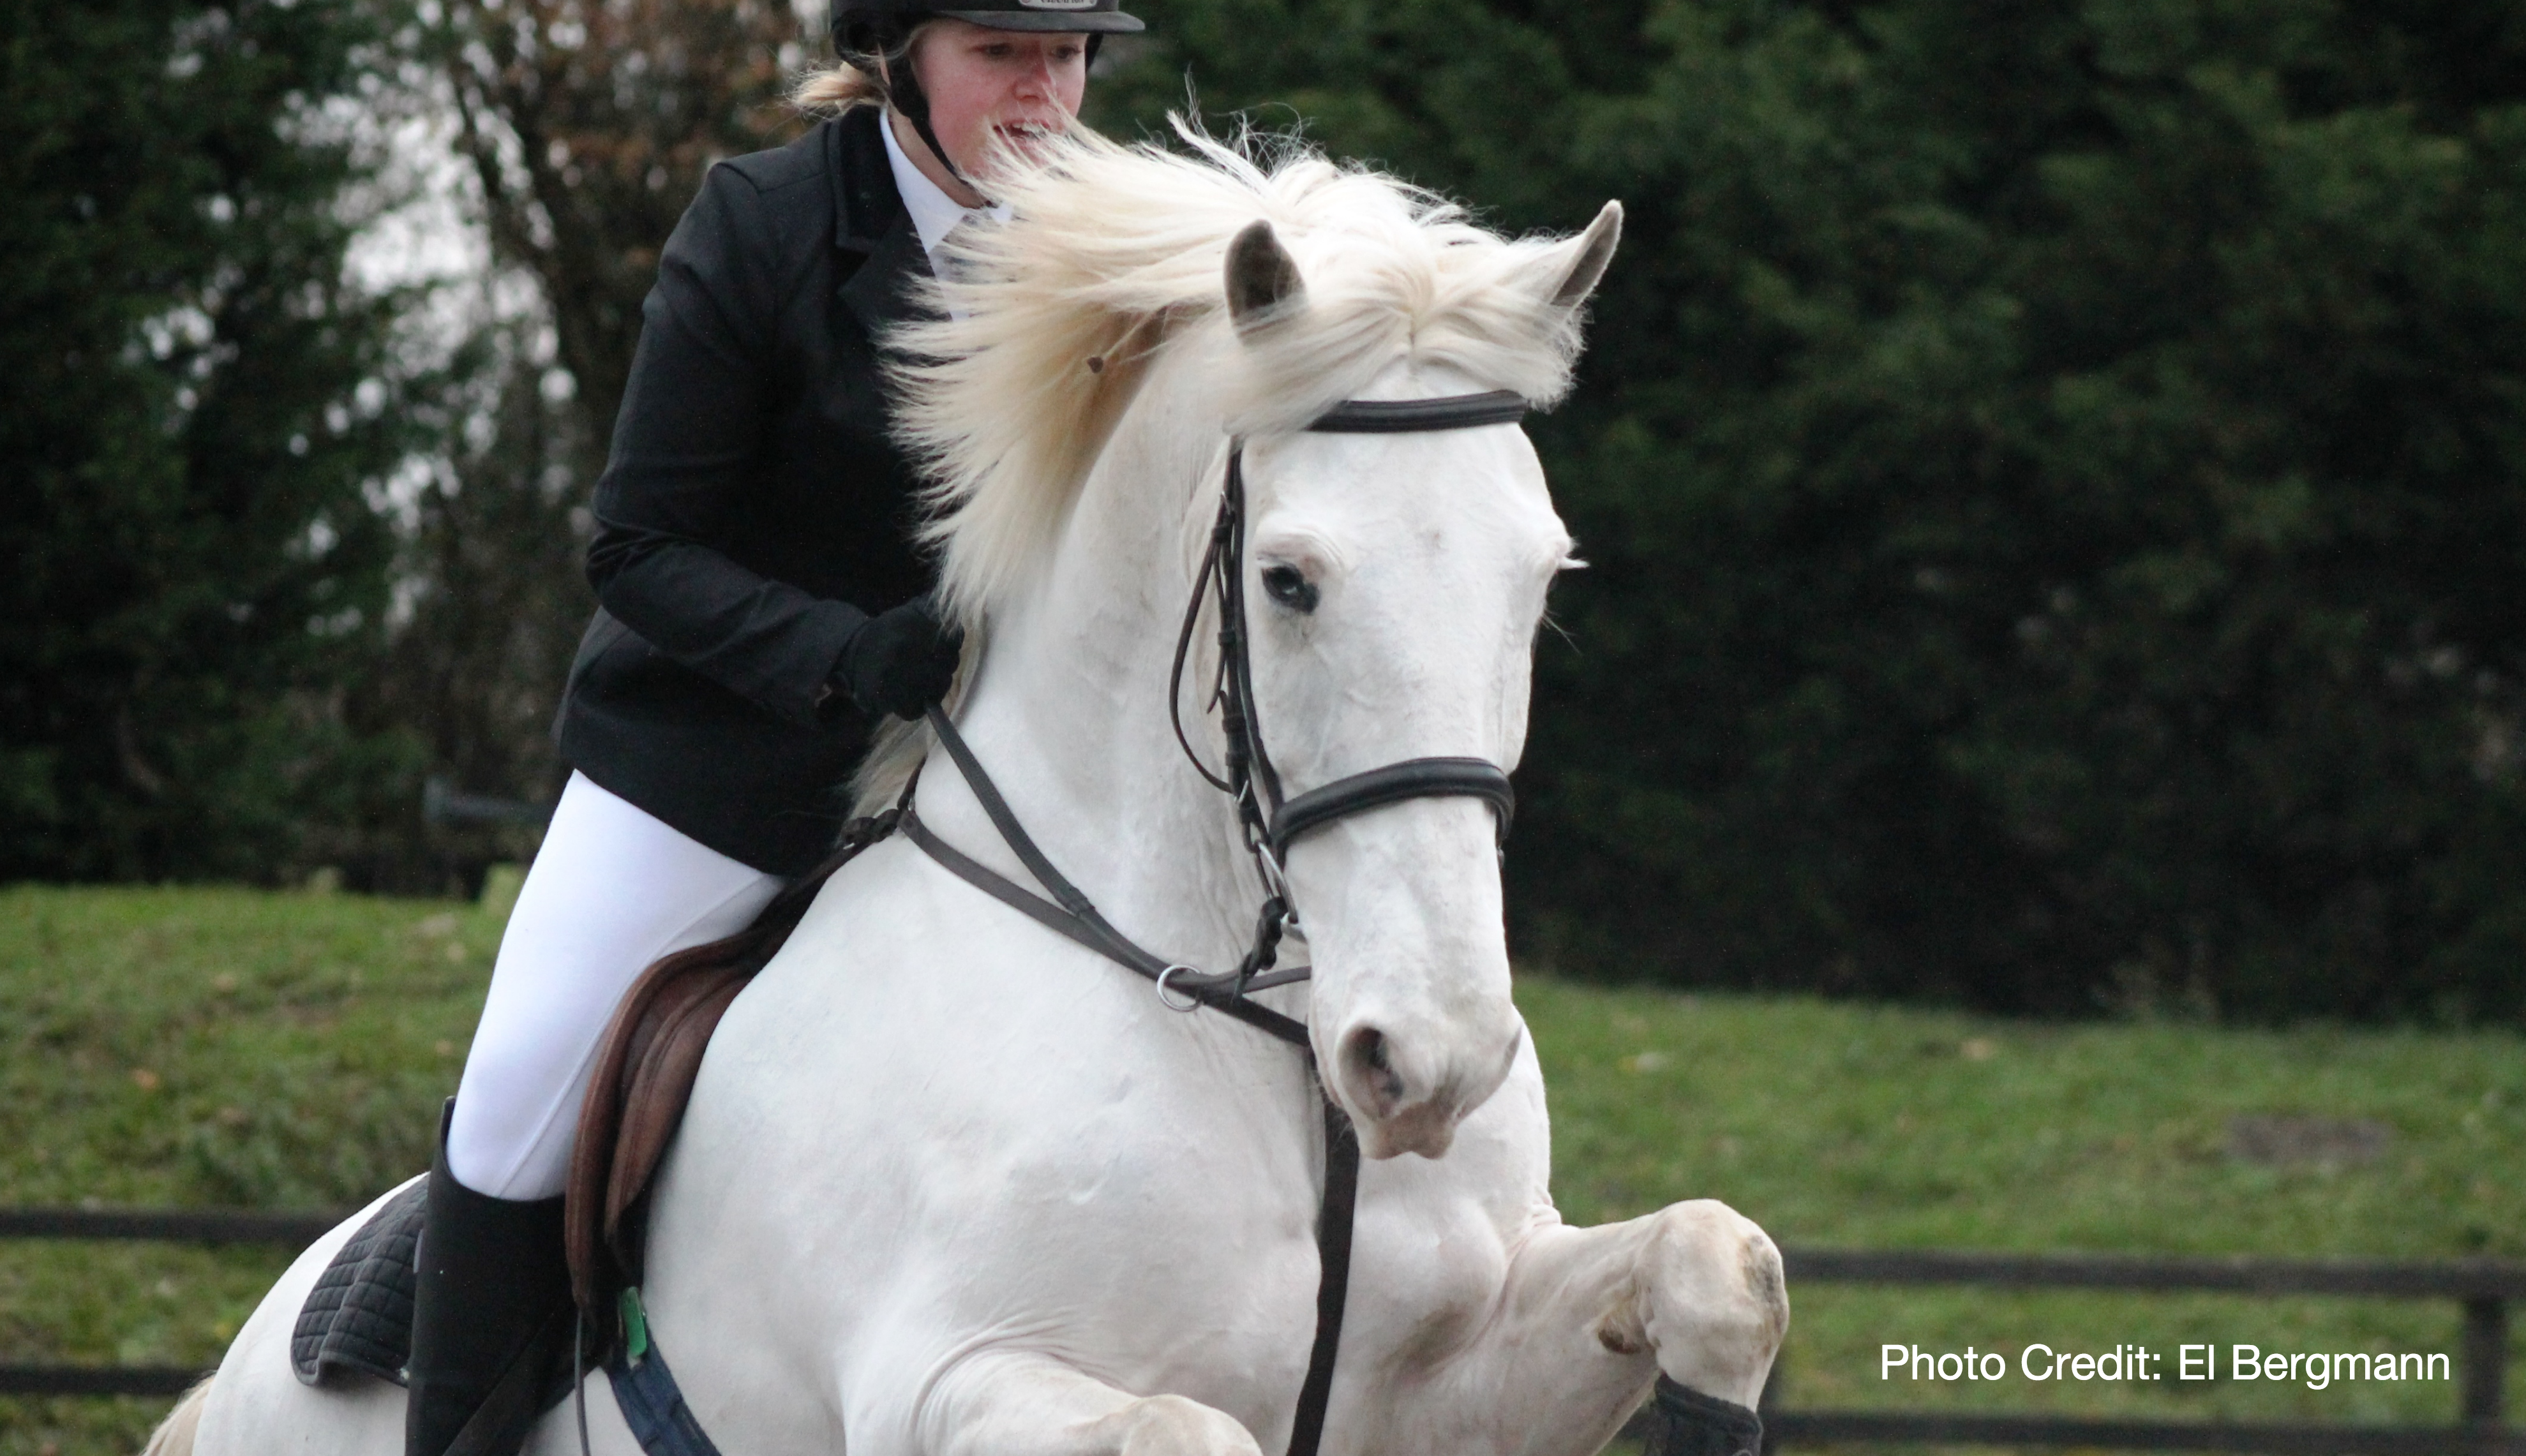 Equestrian Different Equestrian Supplies You Should Have With on